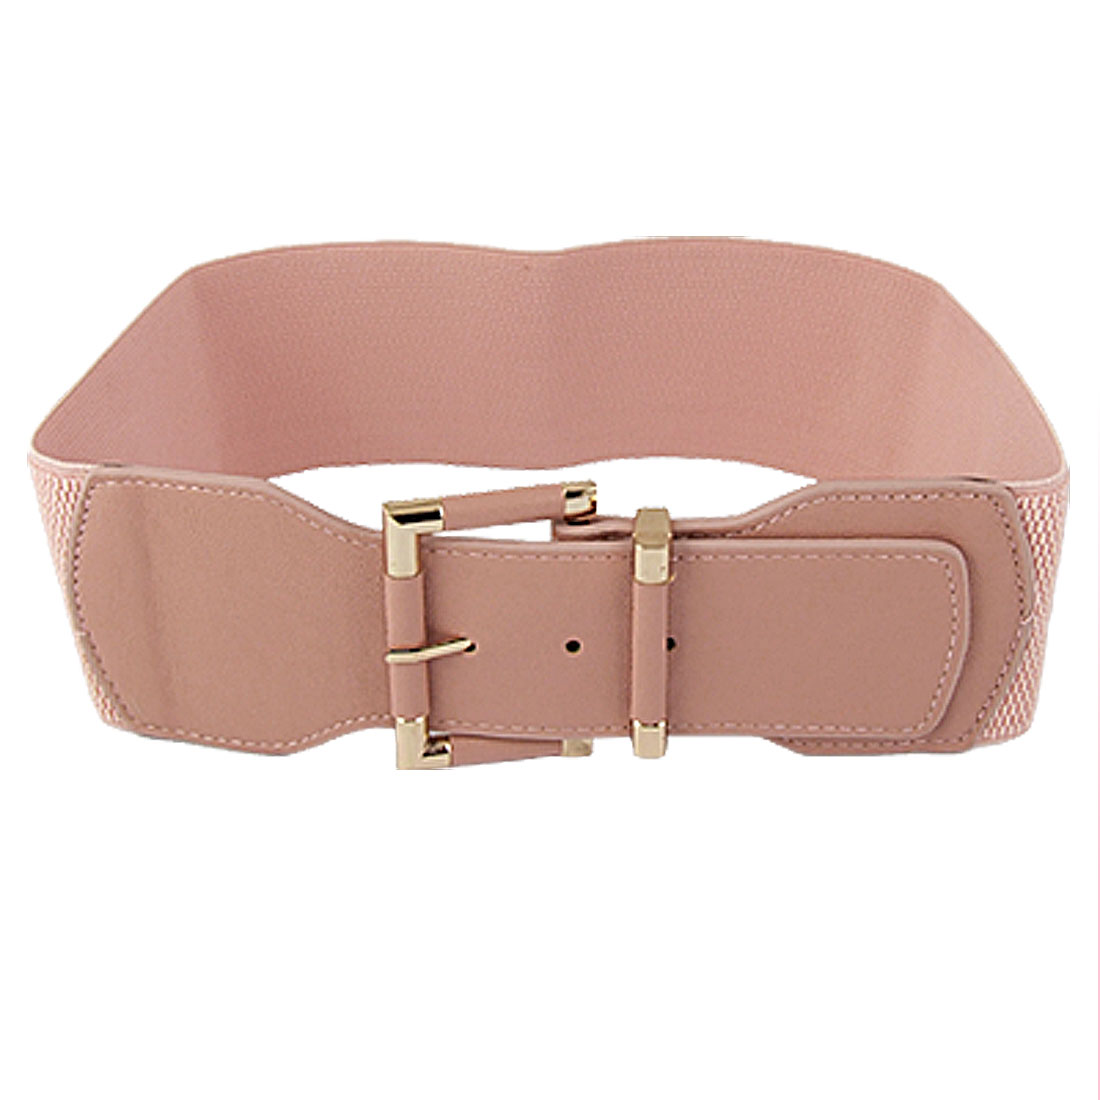 Gold Tone Single Prong Buckle Pink Elastic Waist Belt for Women